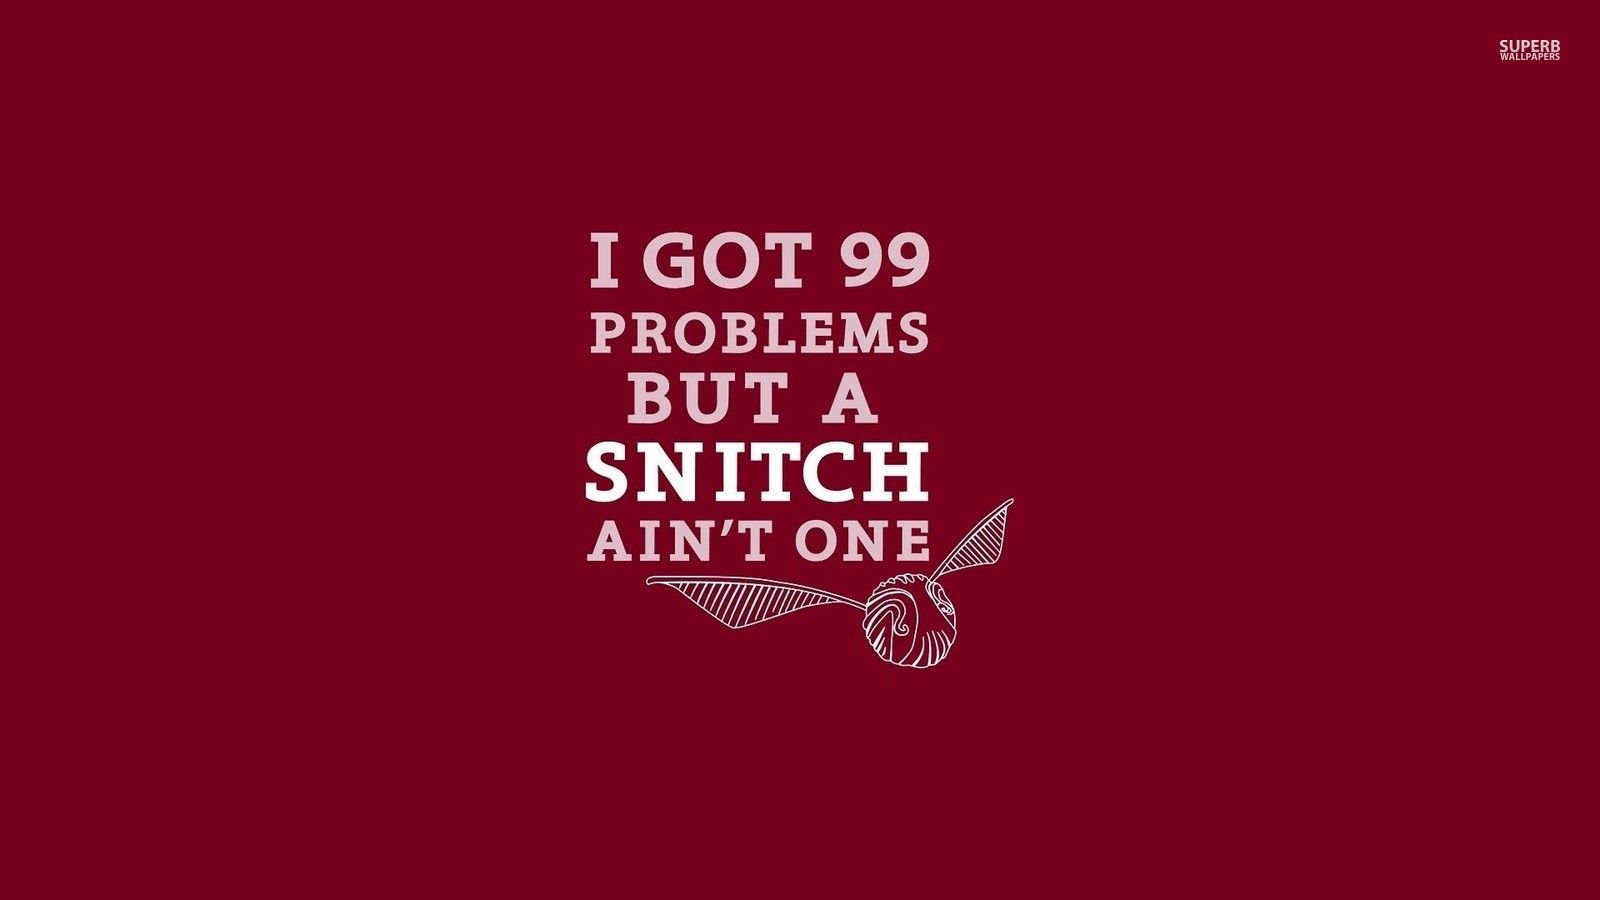 Harry Potter Wallpaper I Got 99 Problems Funny Quotes 99 Problems Quotes